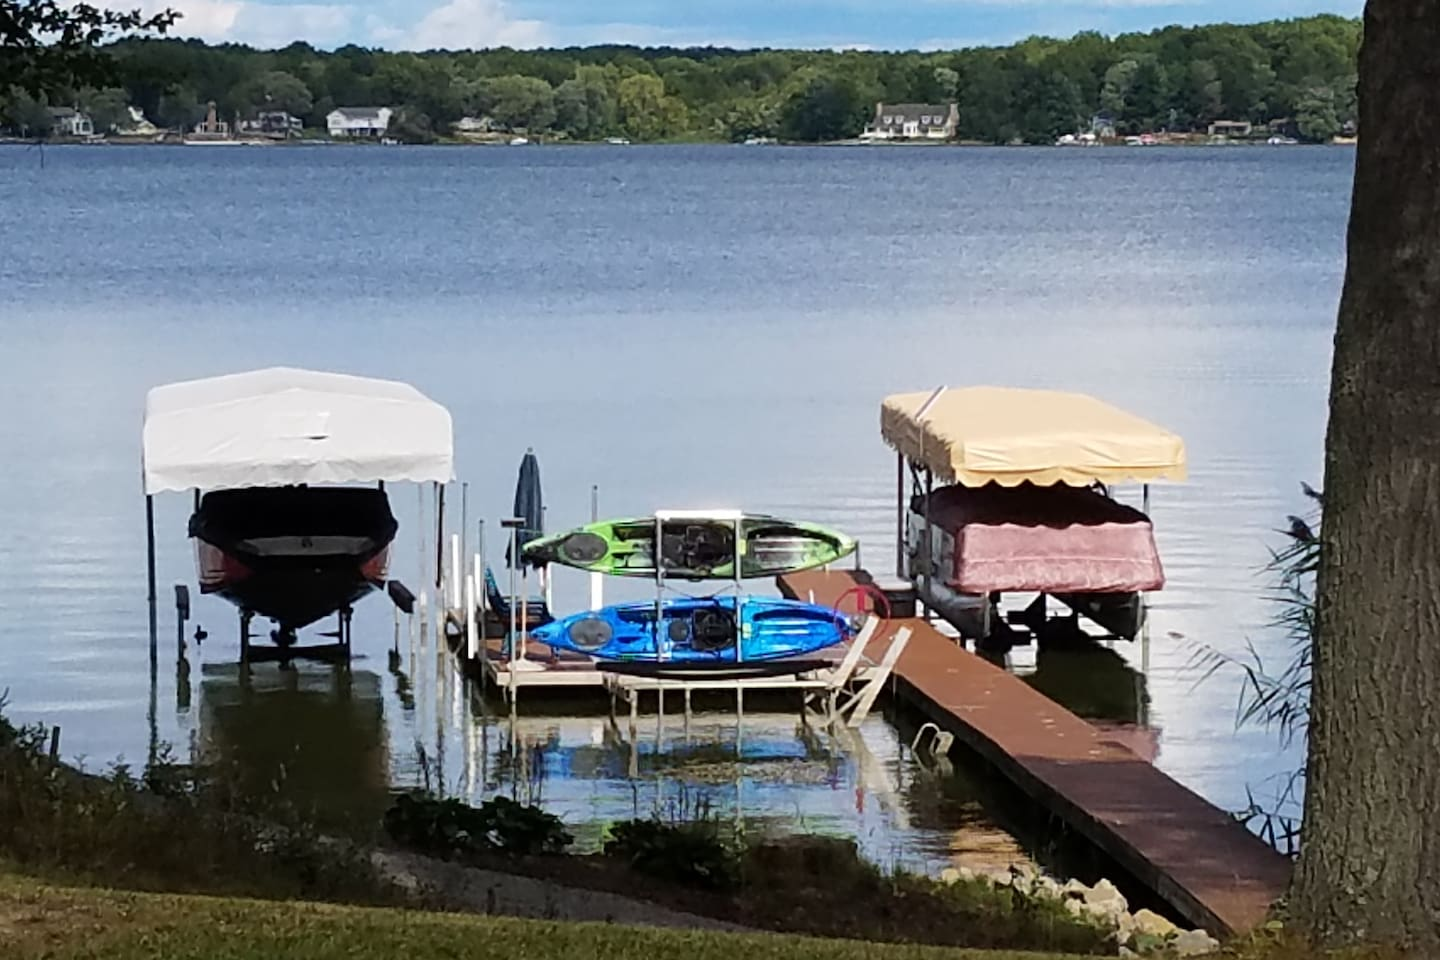 This is our private dock.  If you have a boat and want to bring it we have space on our dock for an. (additional fee)